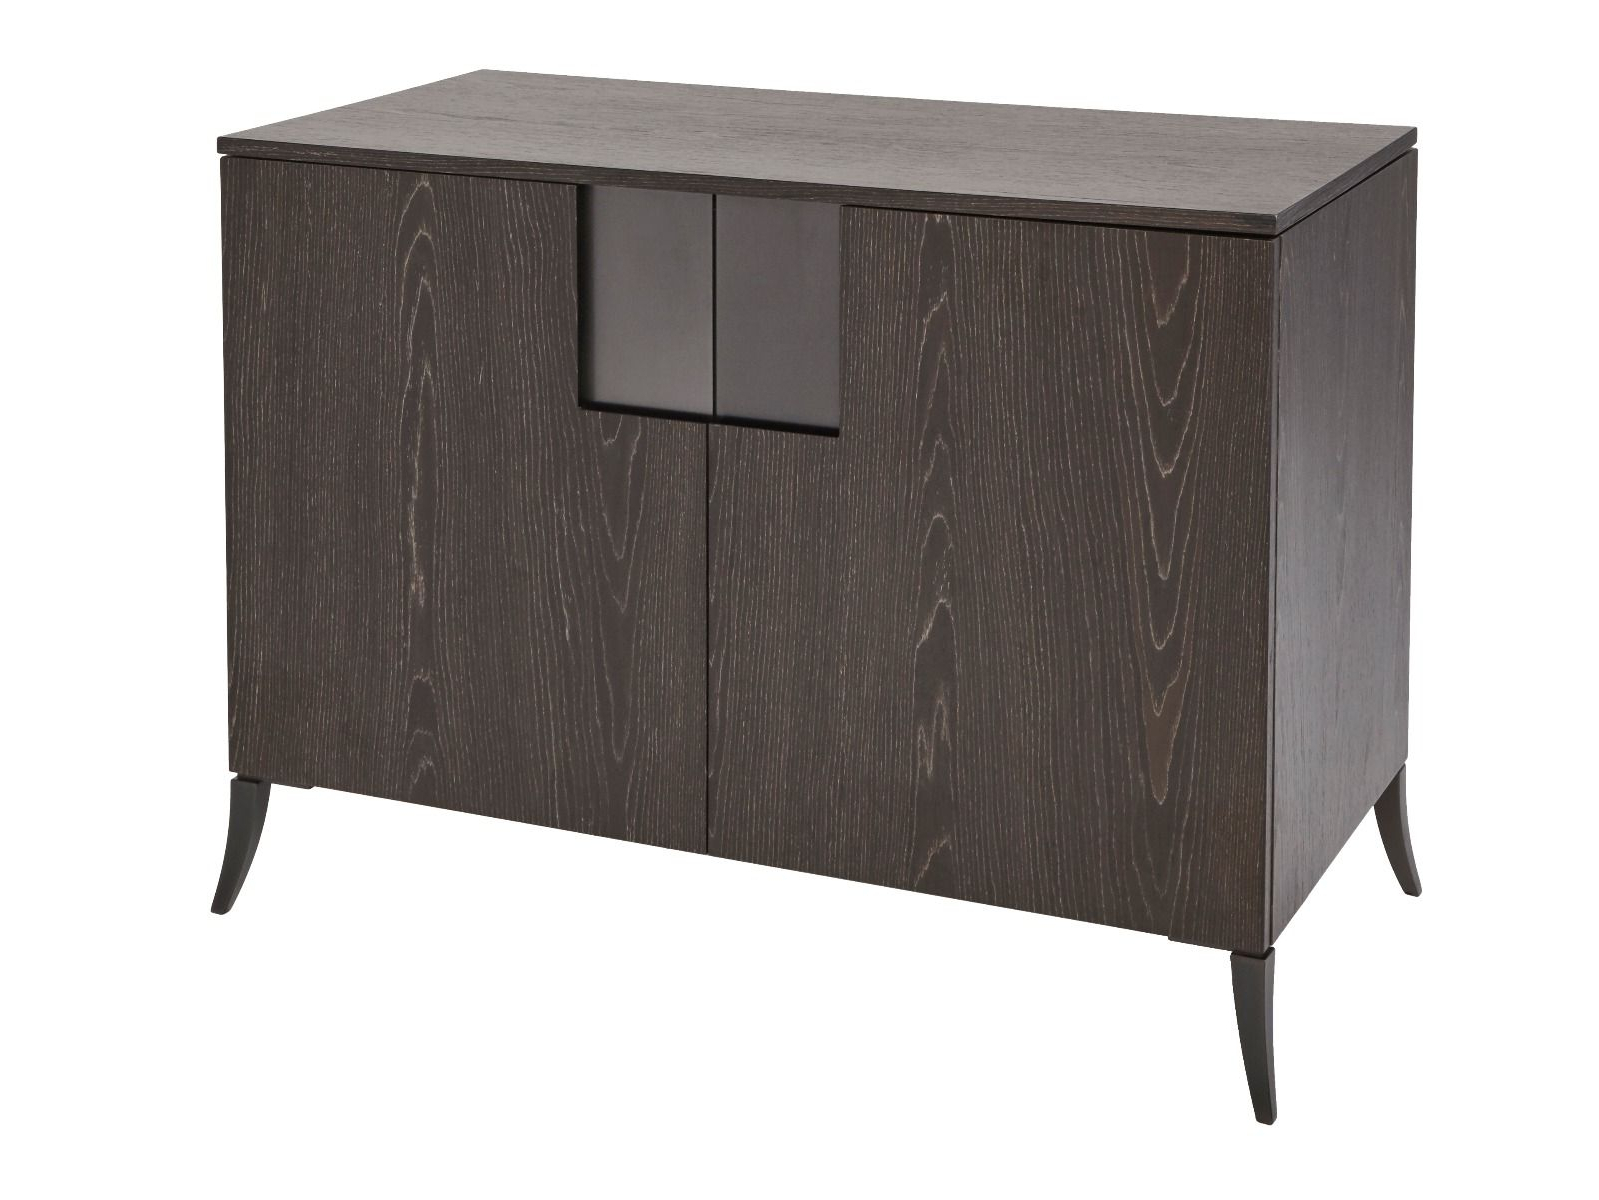 Buffet Sideboard Single Length Within 2 Shelf Buffets With Curved Legs (View 5 of 20)